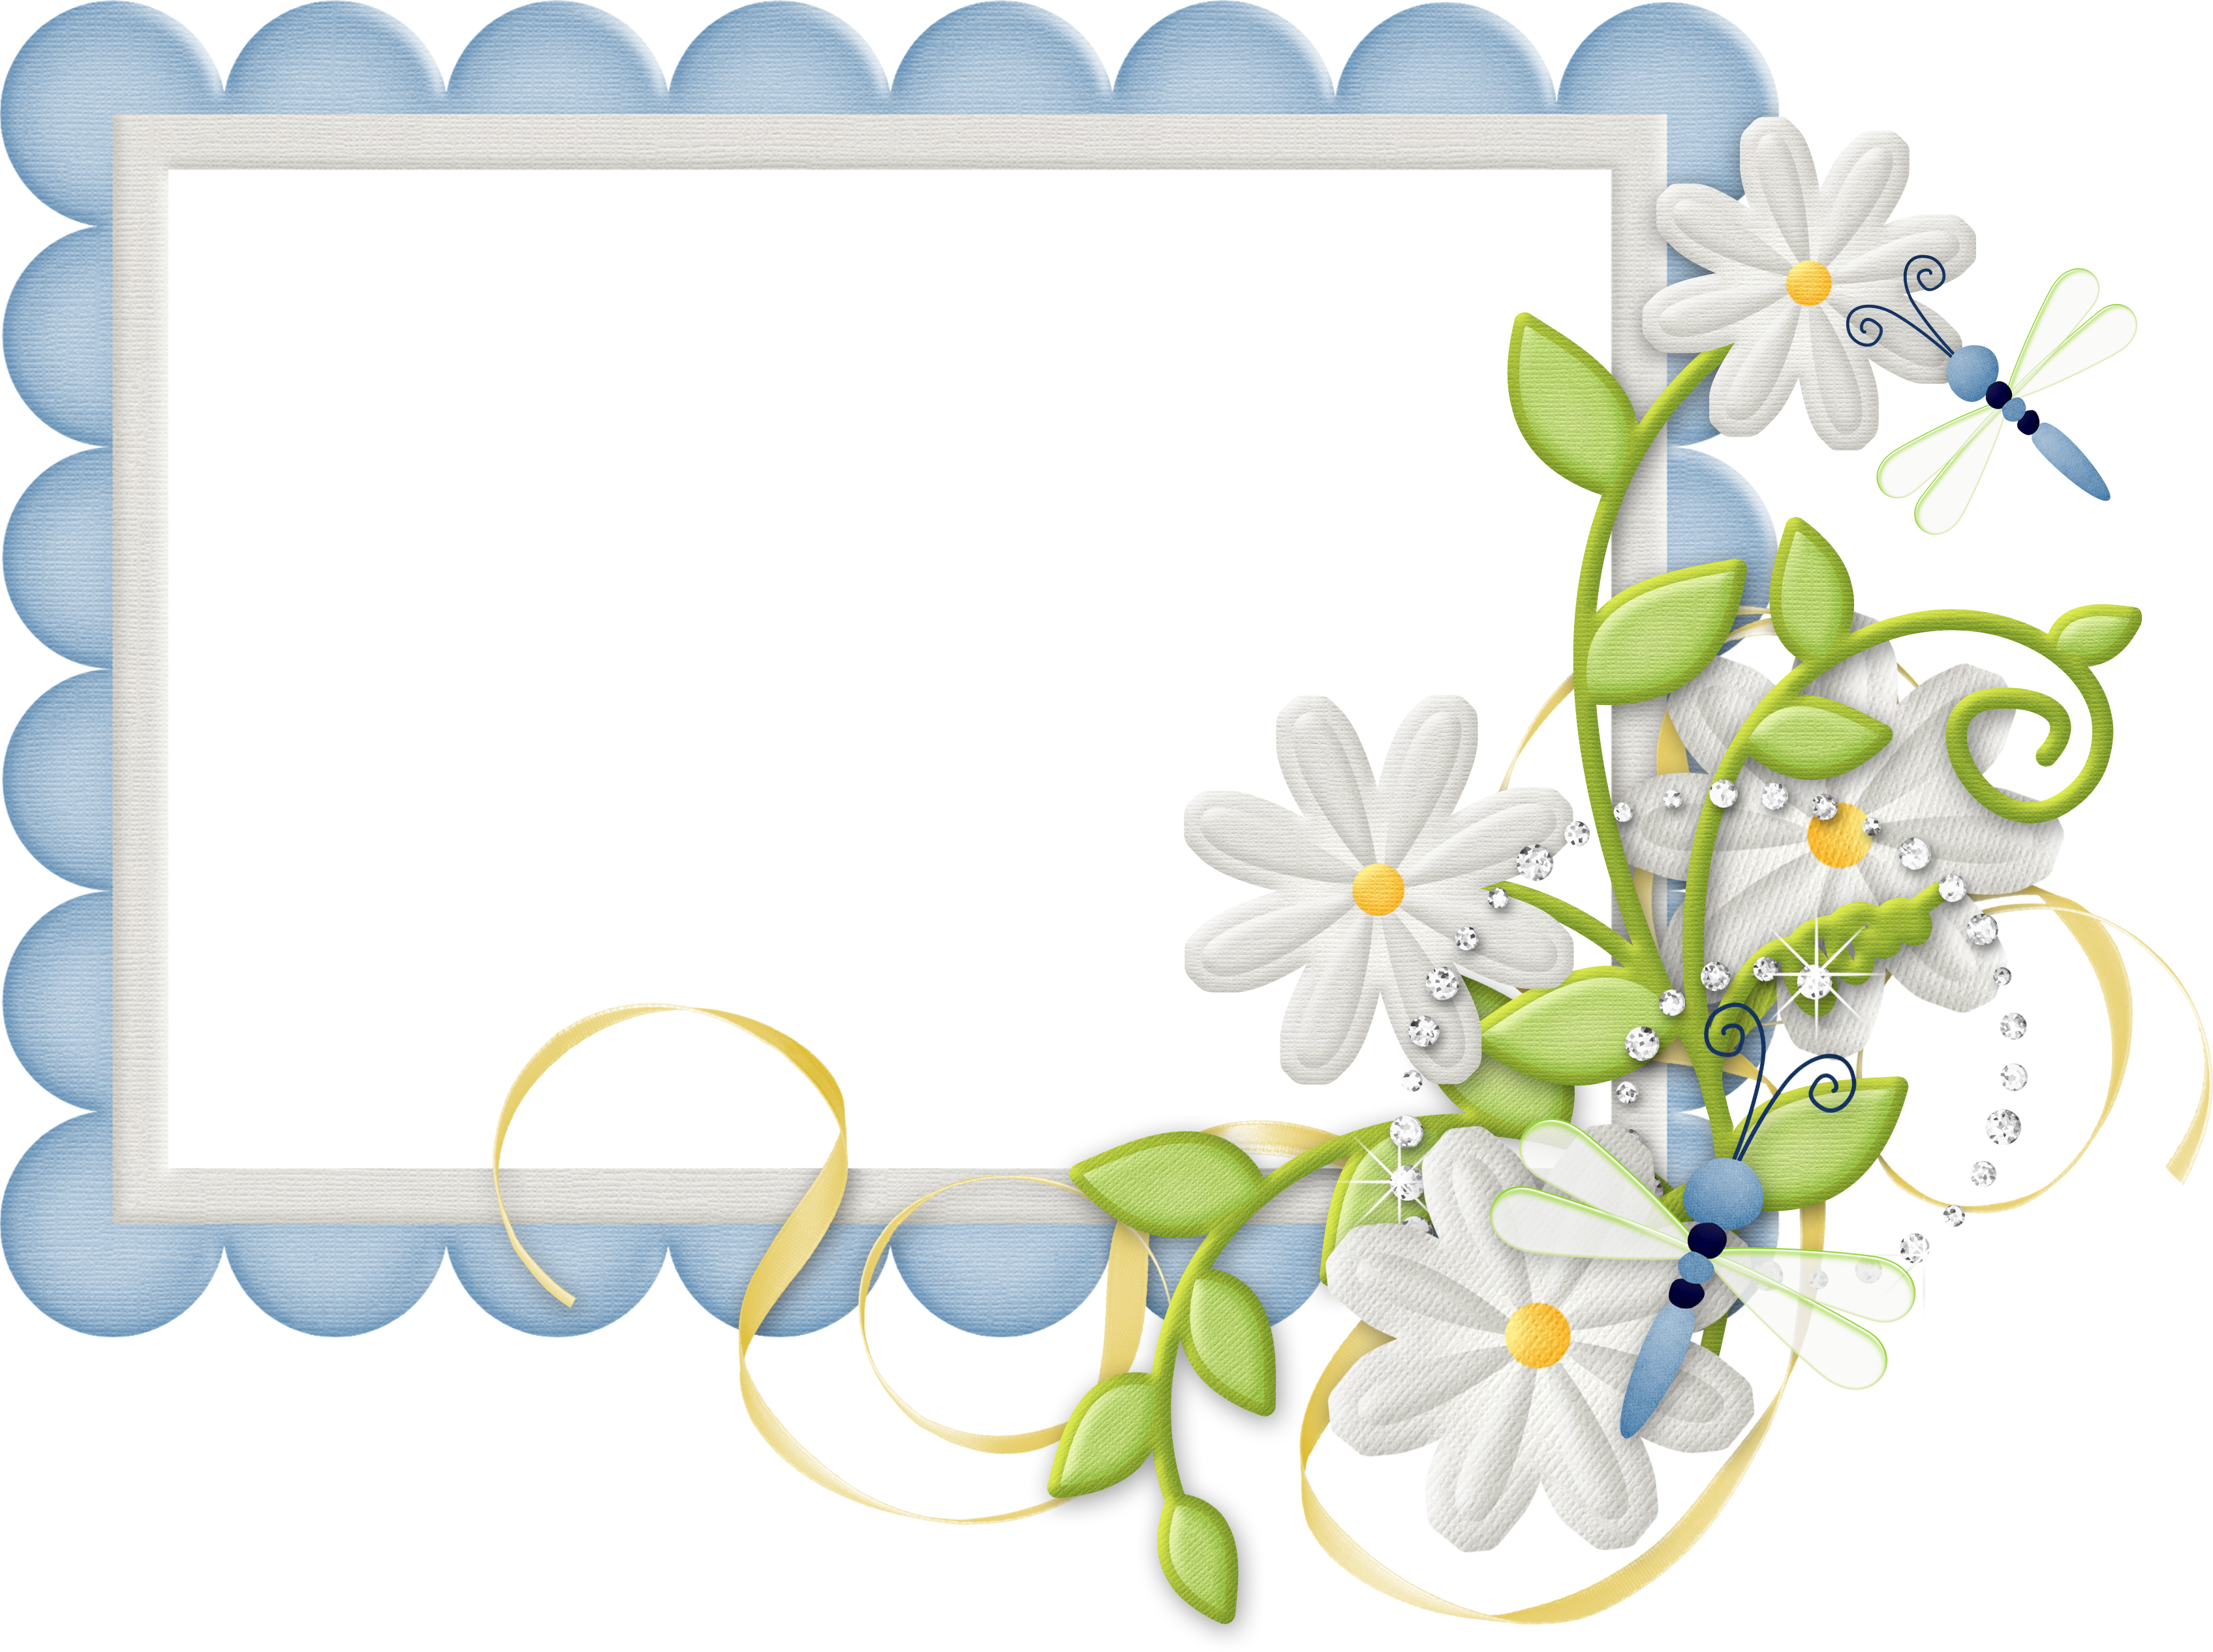 Blue thanksgiving border clipart banner transparent download Cute Large Design Blue Transparent Frame with Daisies   Gallery ... banner transparent download